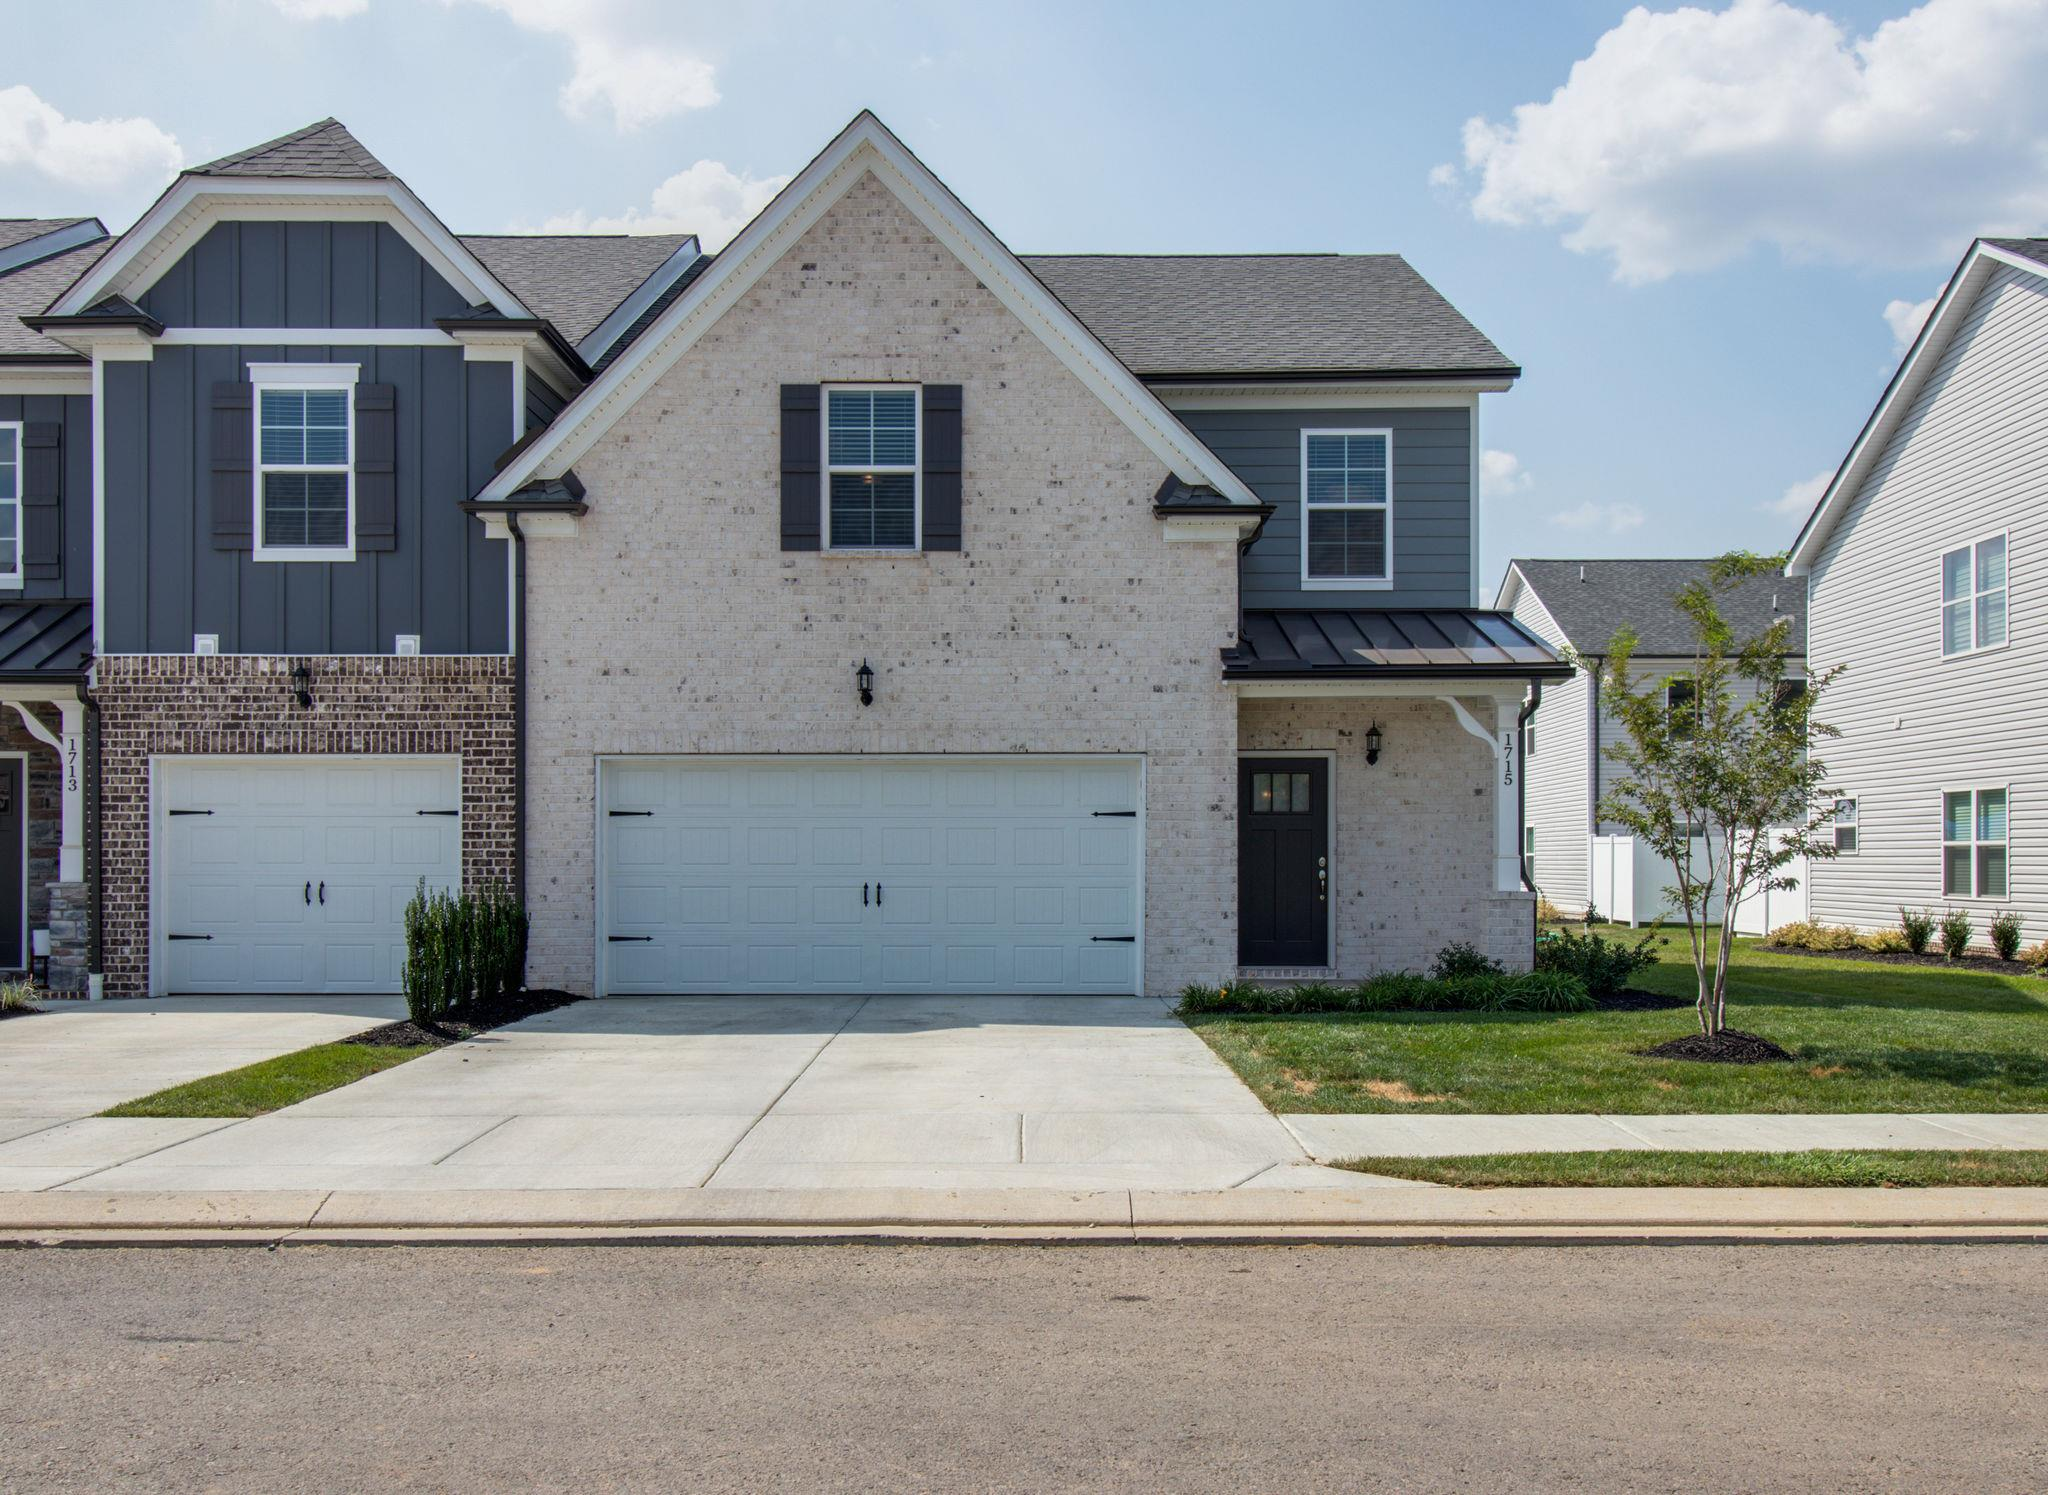 Braxton Parke Townhomes Ph Real Estate Listings Main Image